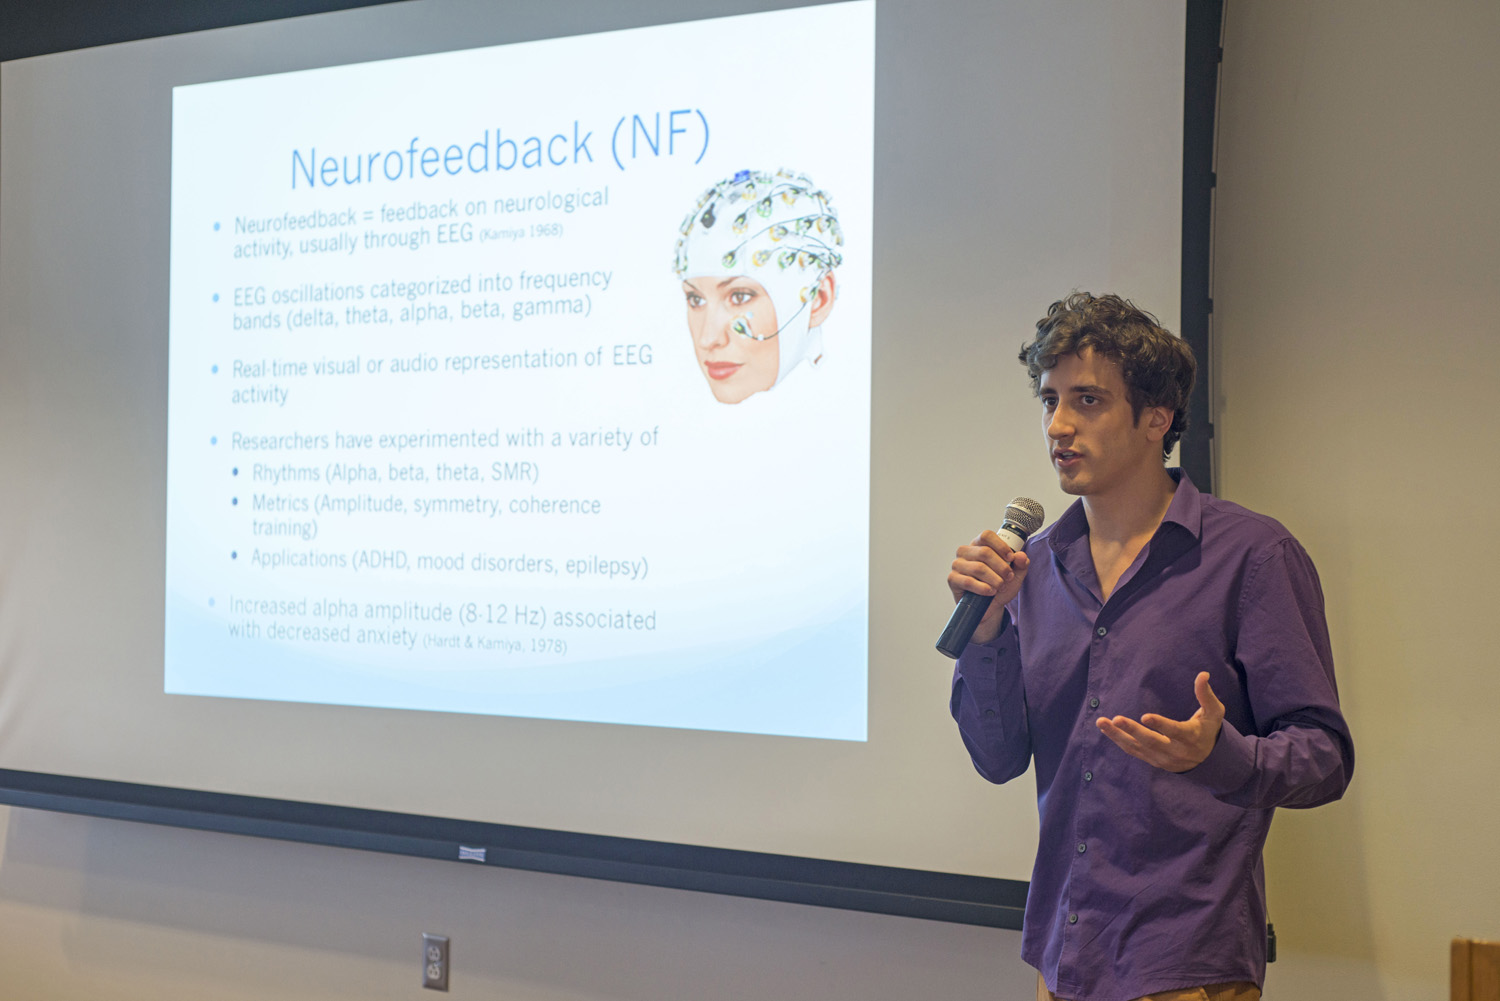 Matan Koplin-Green '15 spoke about his research on alpha neurofeedback training for the purpose of reducing anxiety levels.